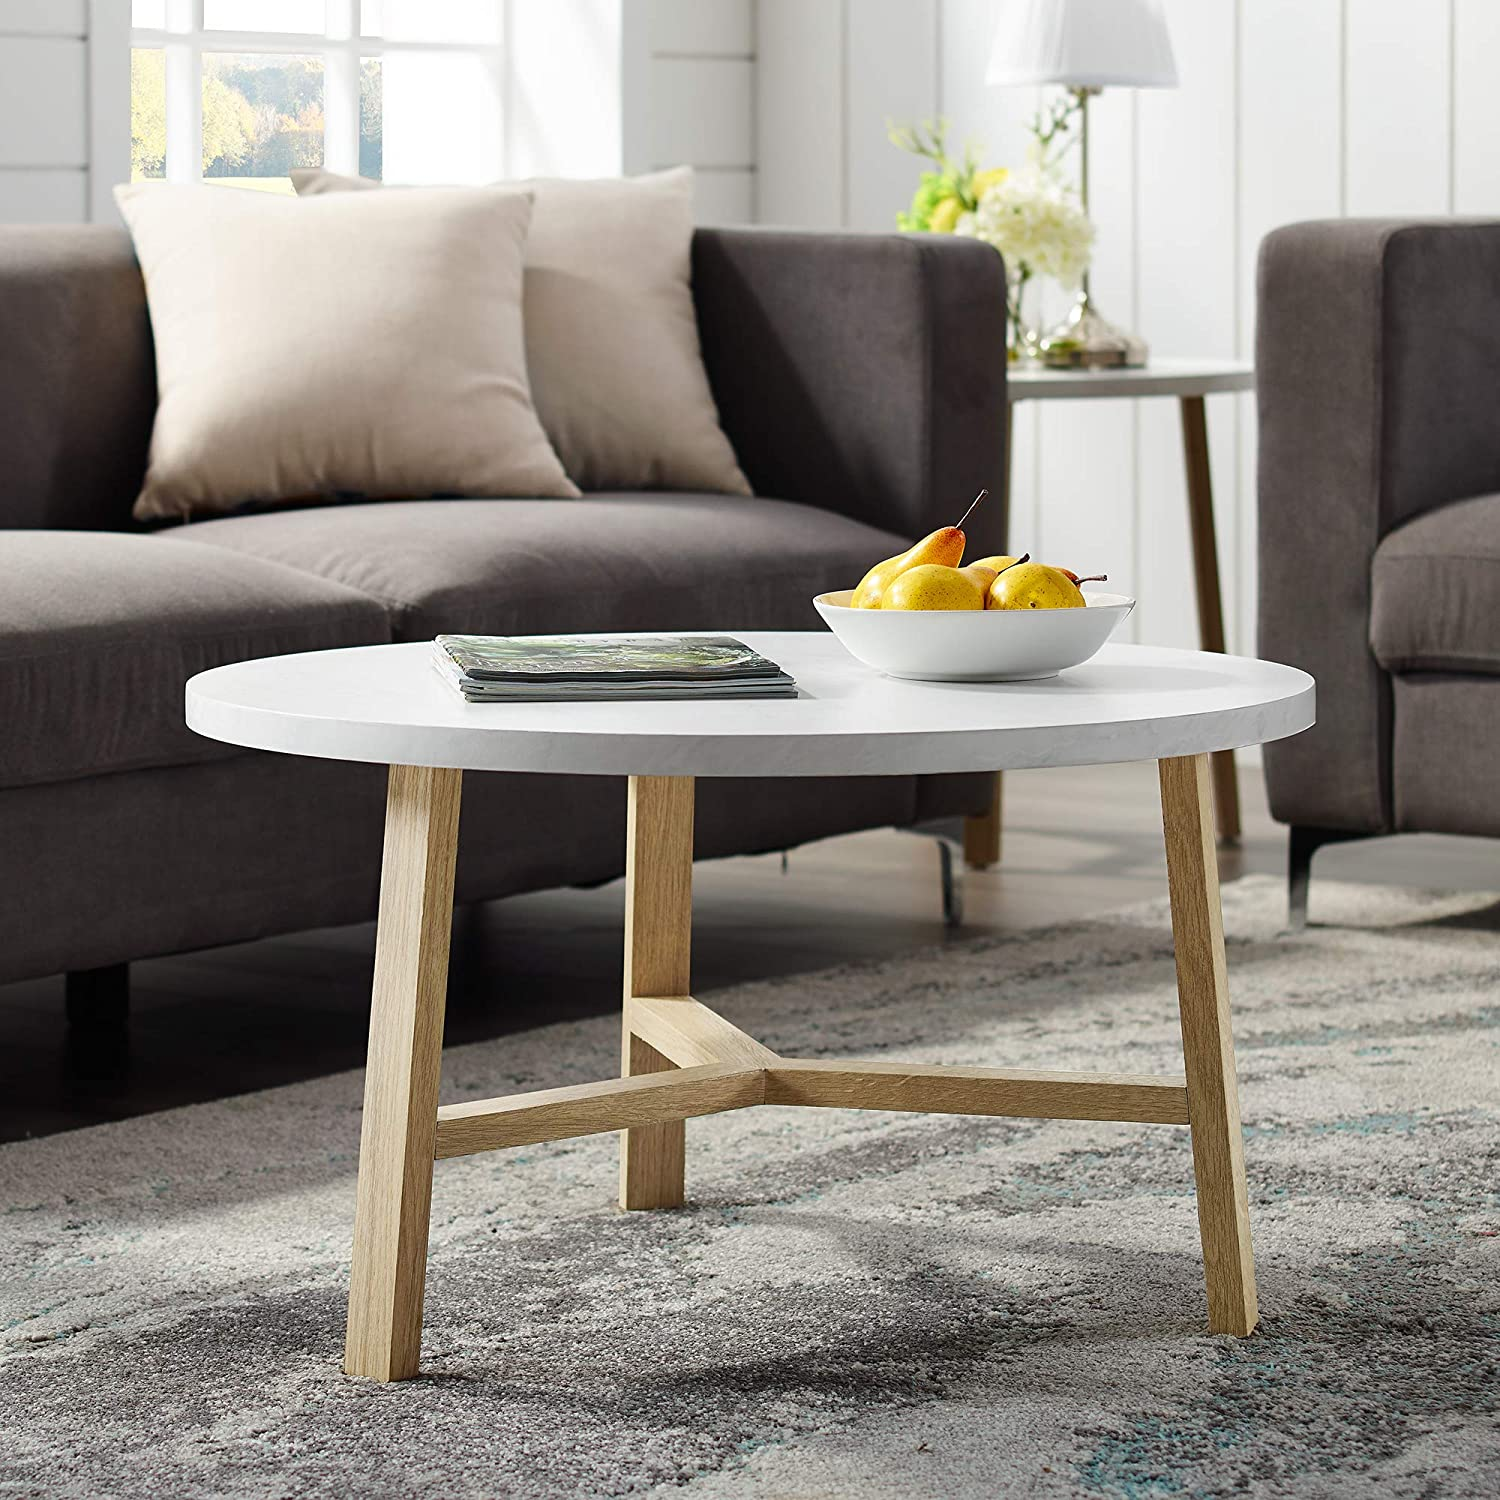 "WE Furniture AZF30EMCTLO Coffee Table 30"" White Marble and Light Oak"